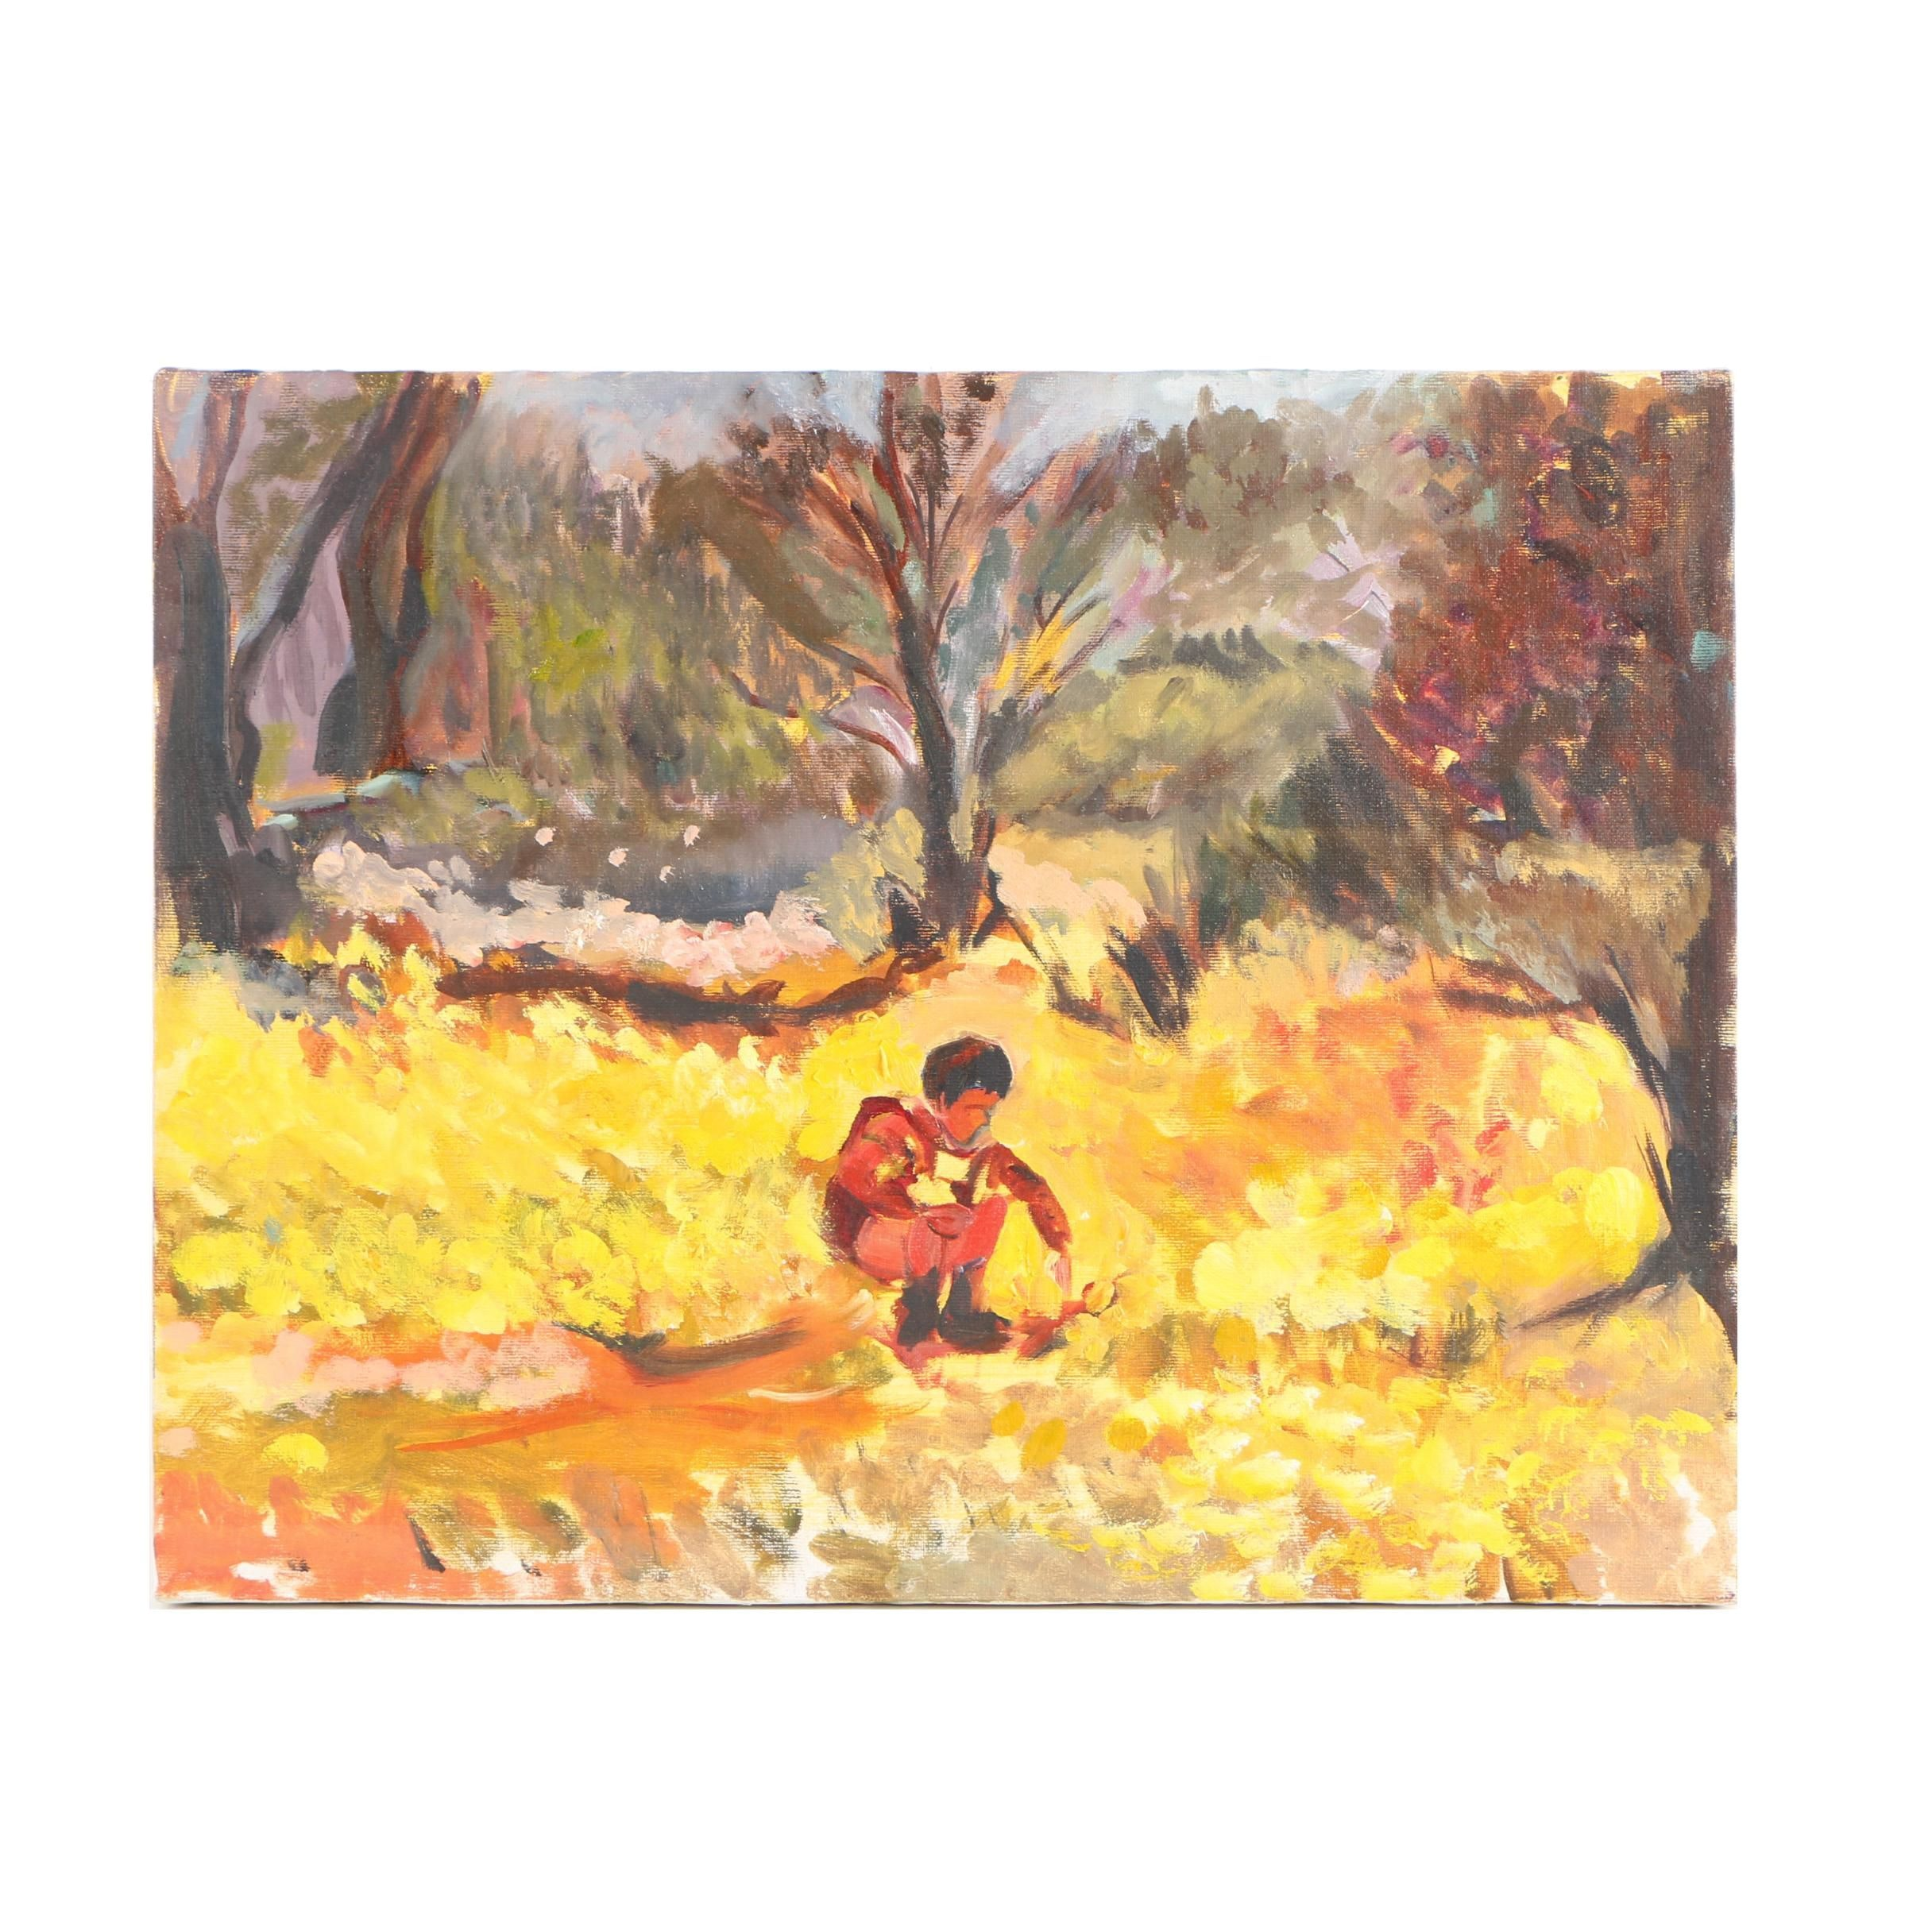 Oil on Canvas Painting of a Child in an Autumn Landscape